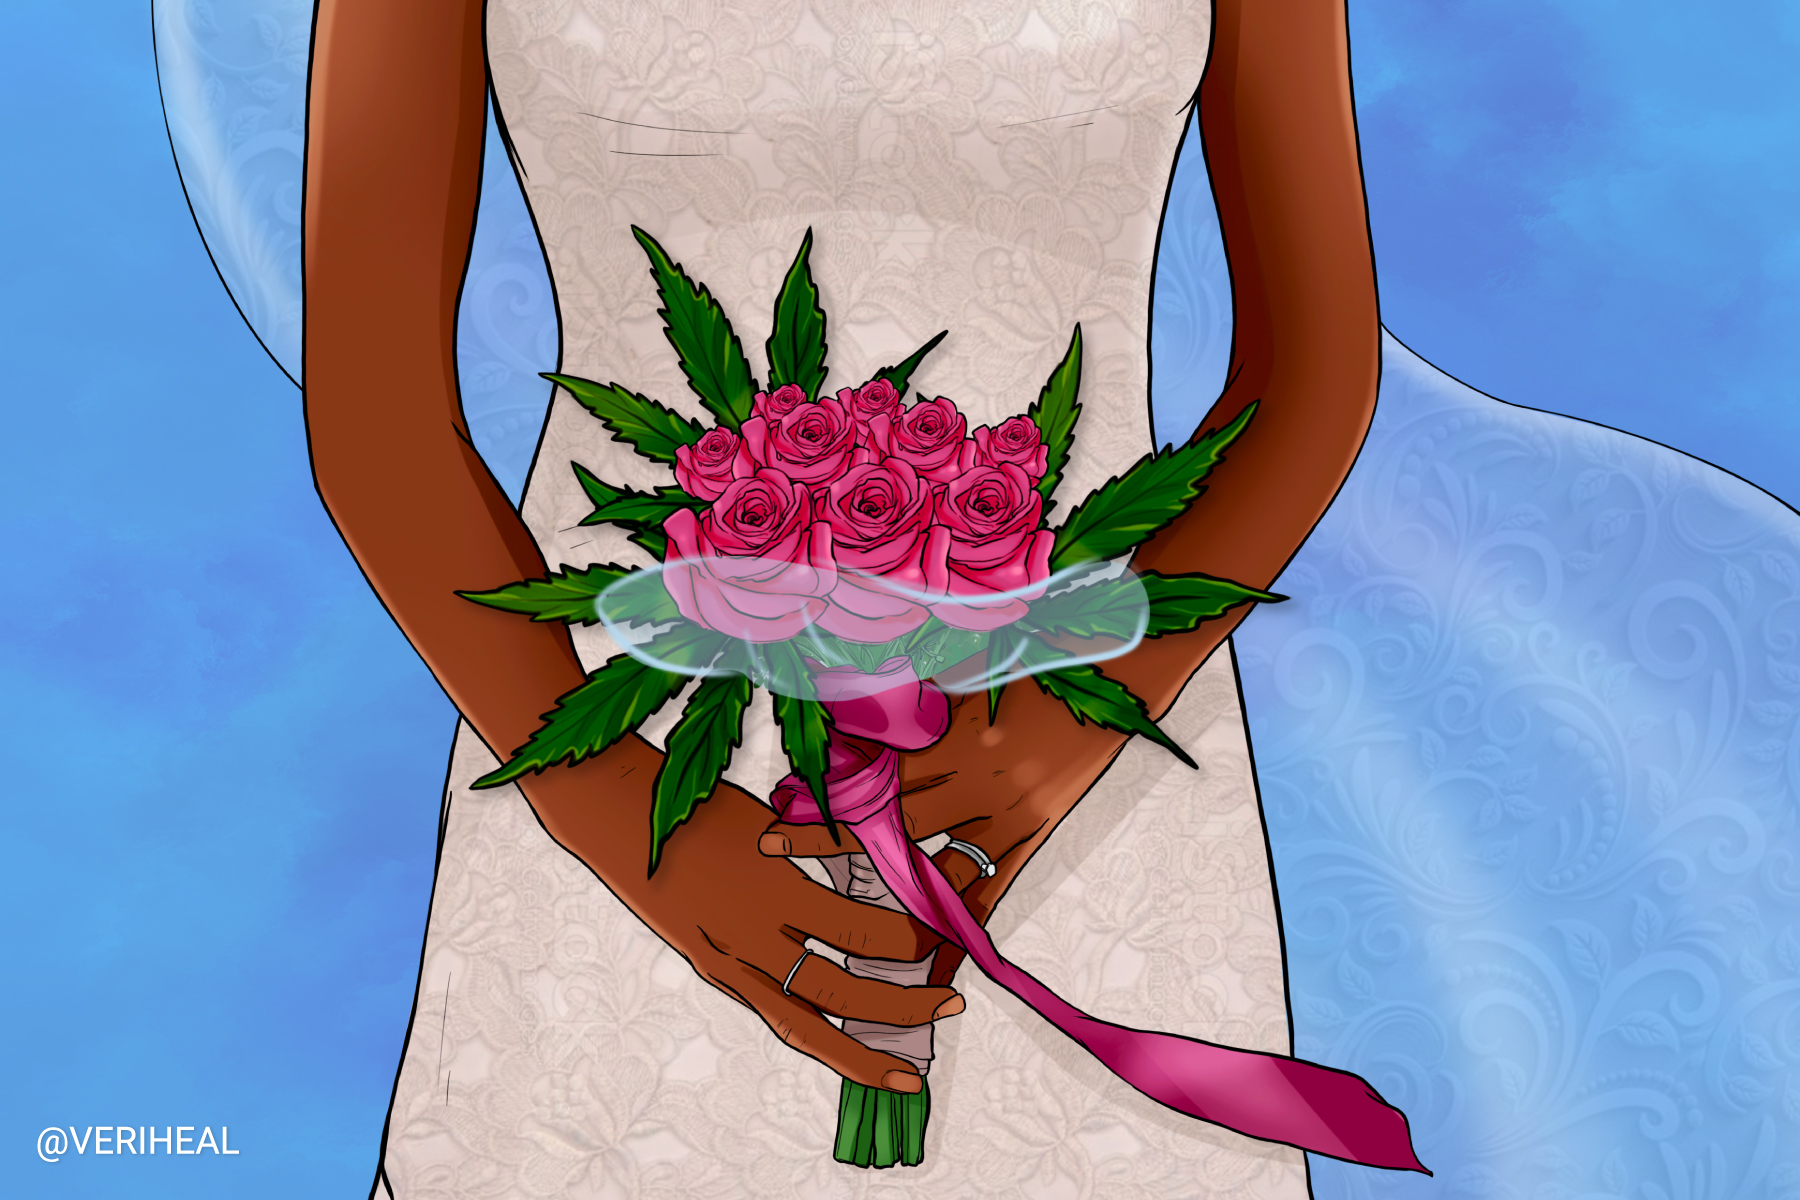 Cannabis-Friendly Weddings Are Becoming All the Rage